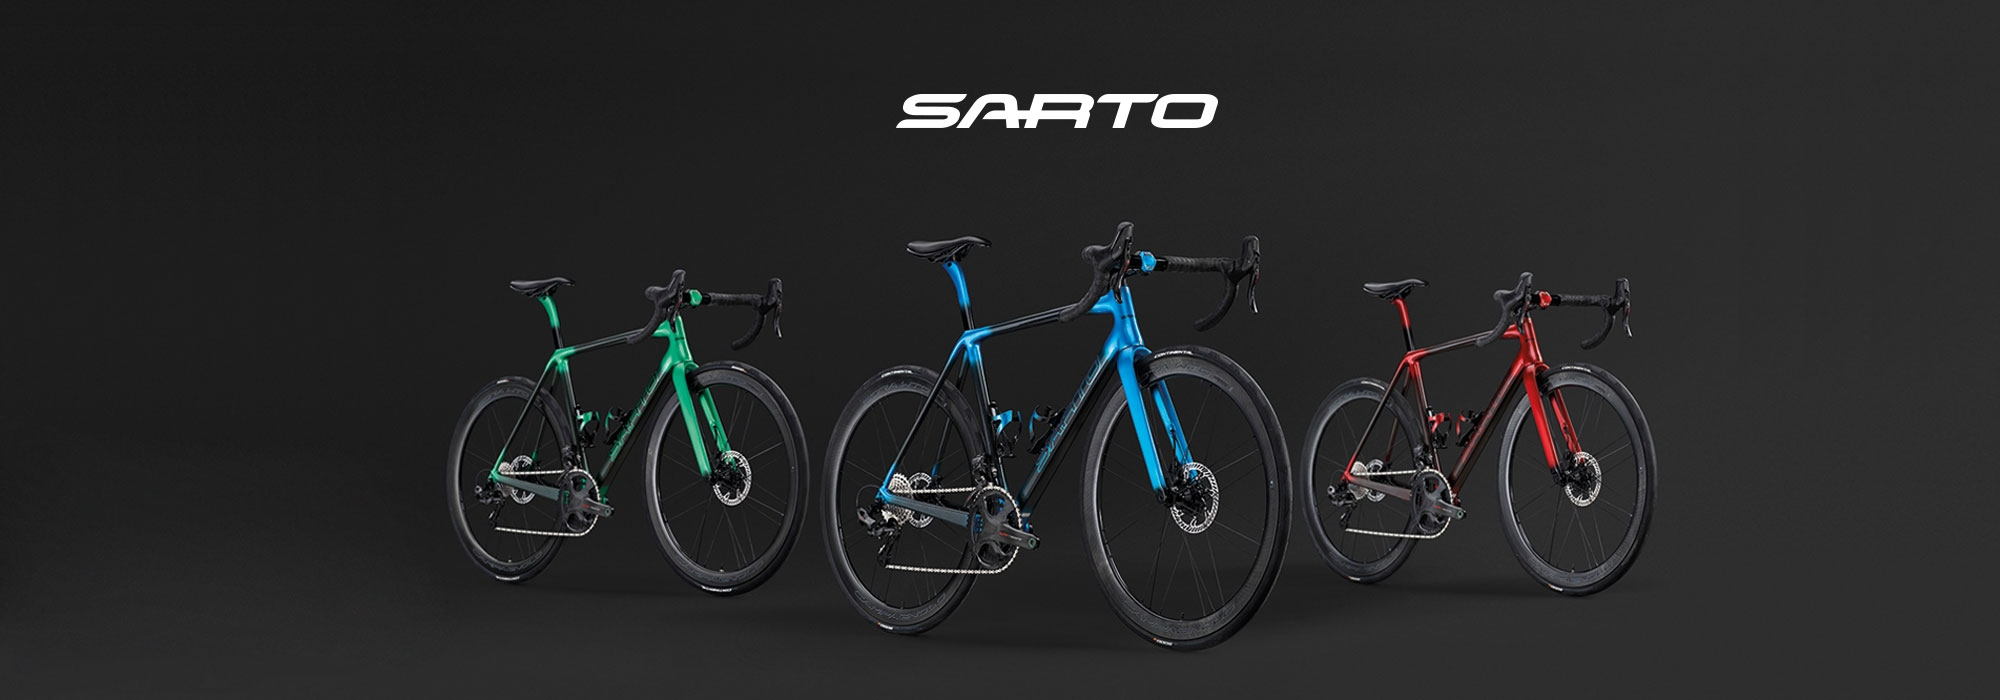 Sarto - When your Soul is ready